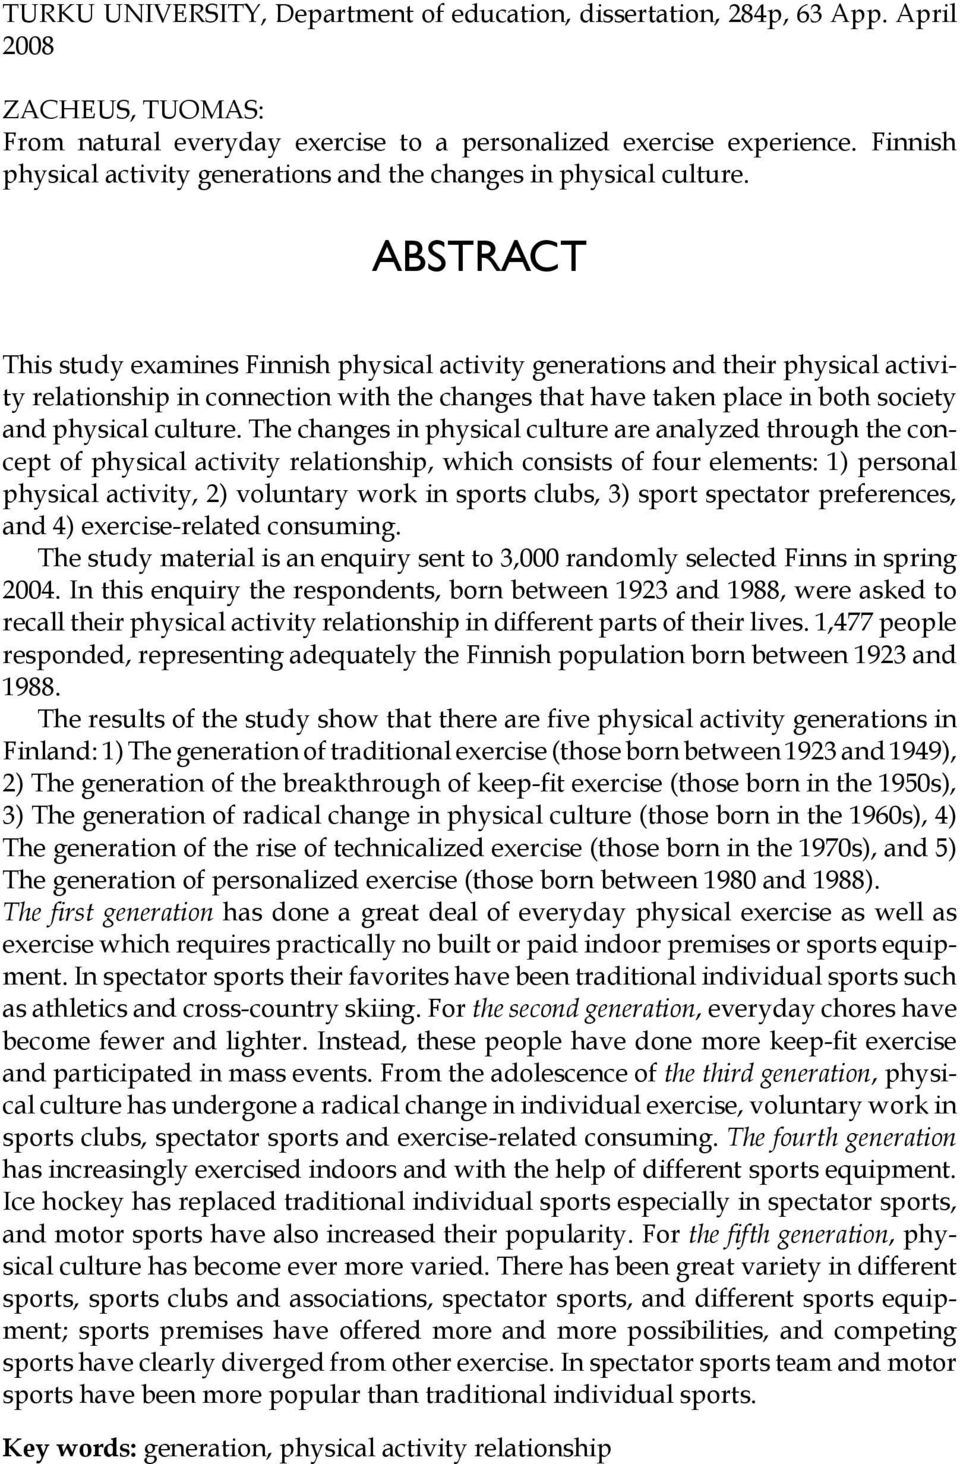 ABSTRACT This study examines Finnish physical activity generations and their physical activity relationship in connection with the changes that have taken place in both society and physical culture.